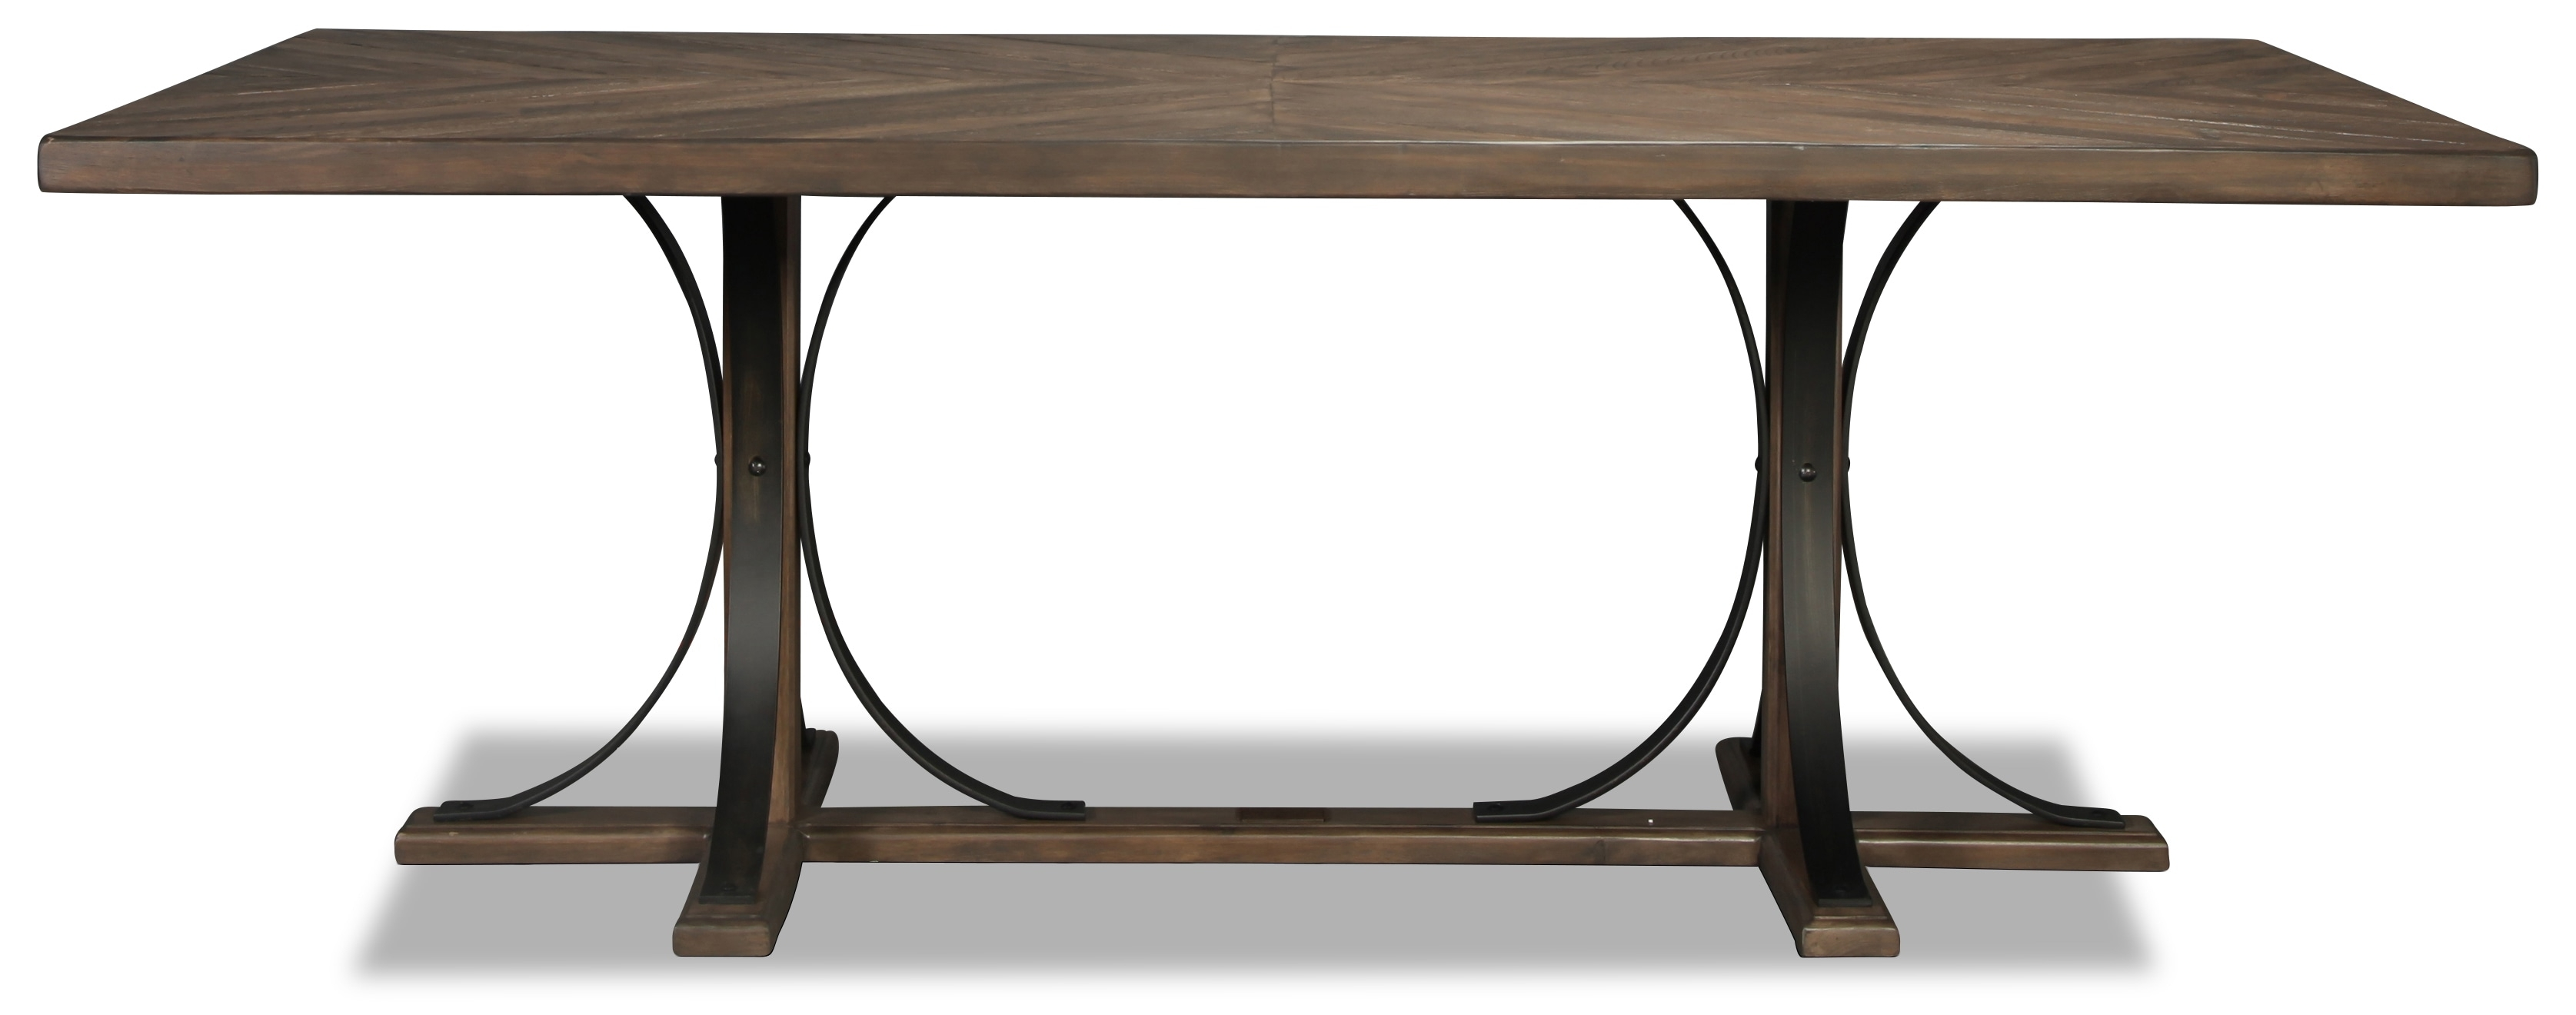 Magnolia Home Traditional Iron Trestle Table | In Best And Newest Magnolia Home Sawbuck Dining Tables (Image 14 of 20)